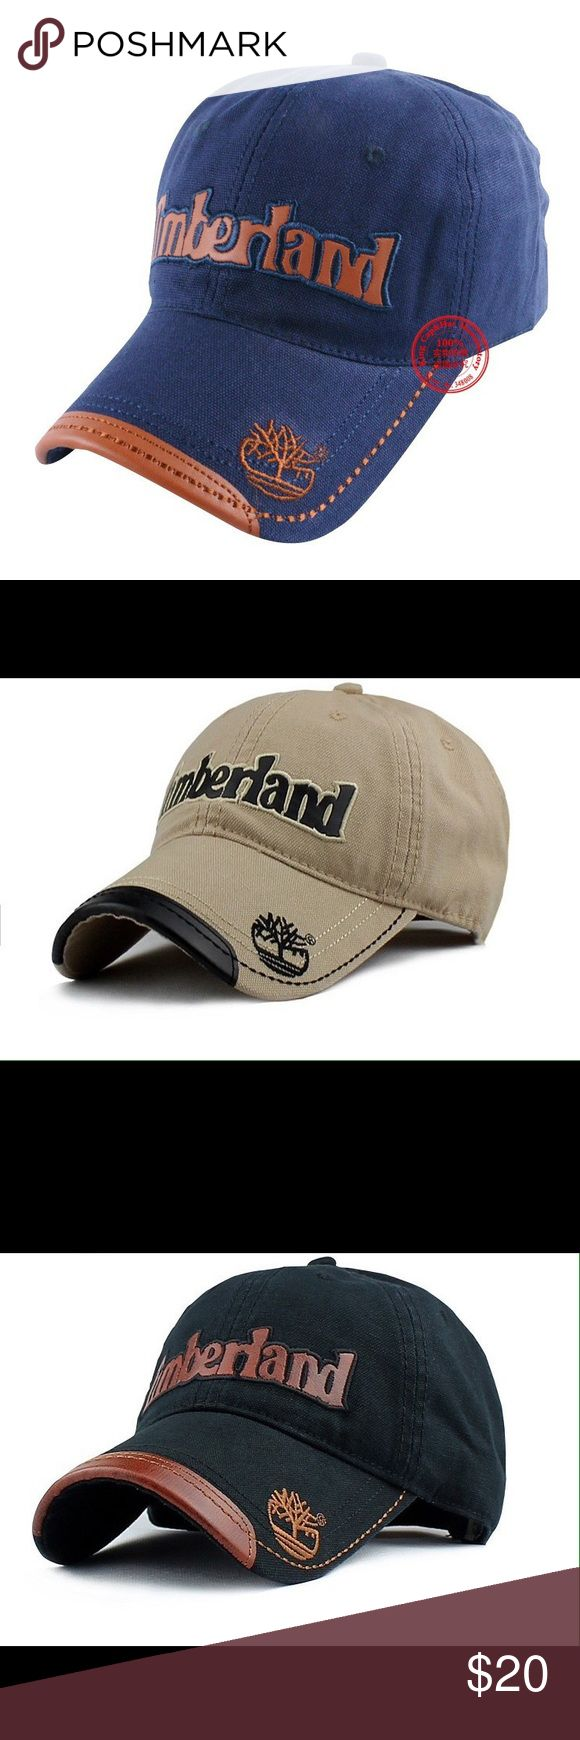 Timberland Baseball Hats Brand new adjustable Timberland baseball caps! Style at it's best Timberland Accessories Hats